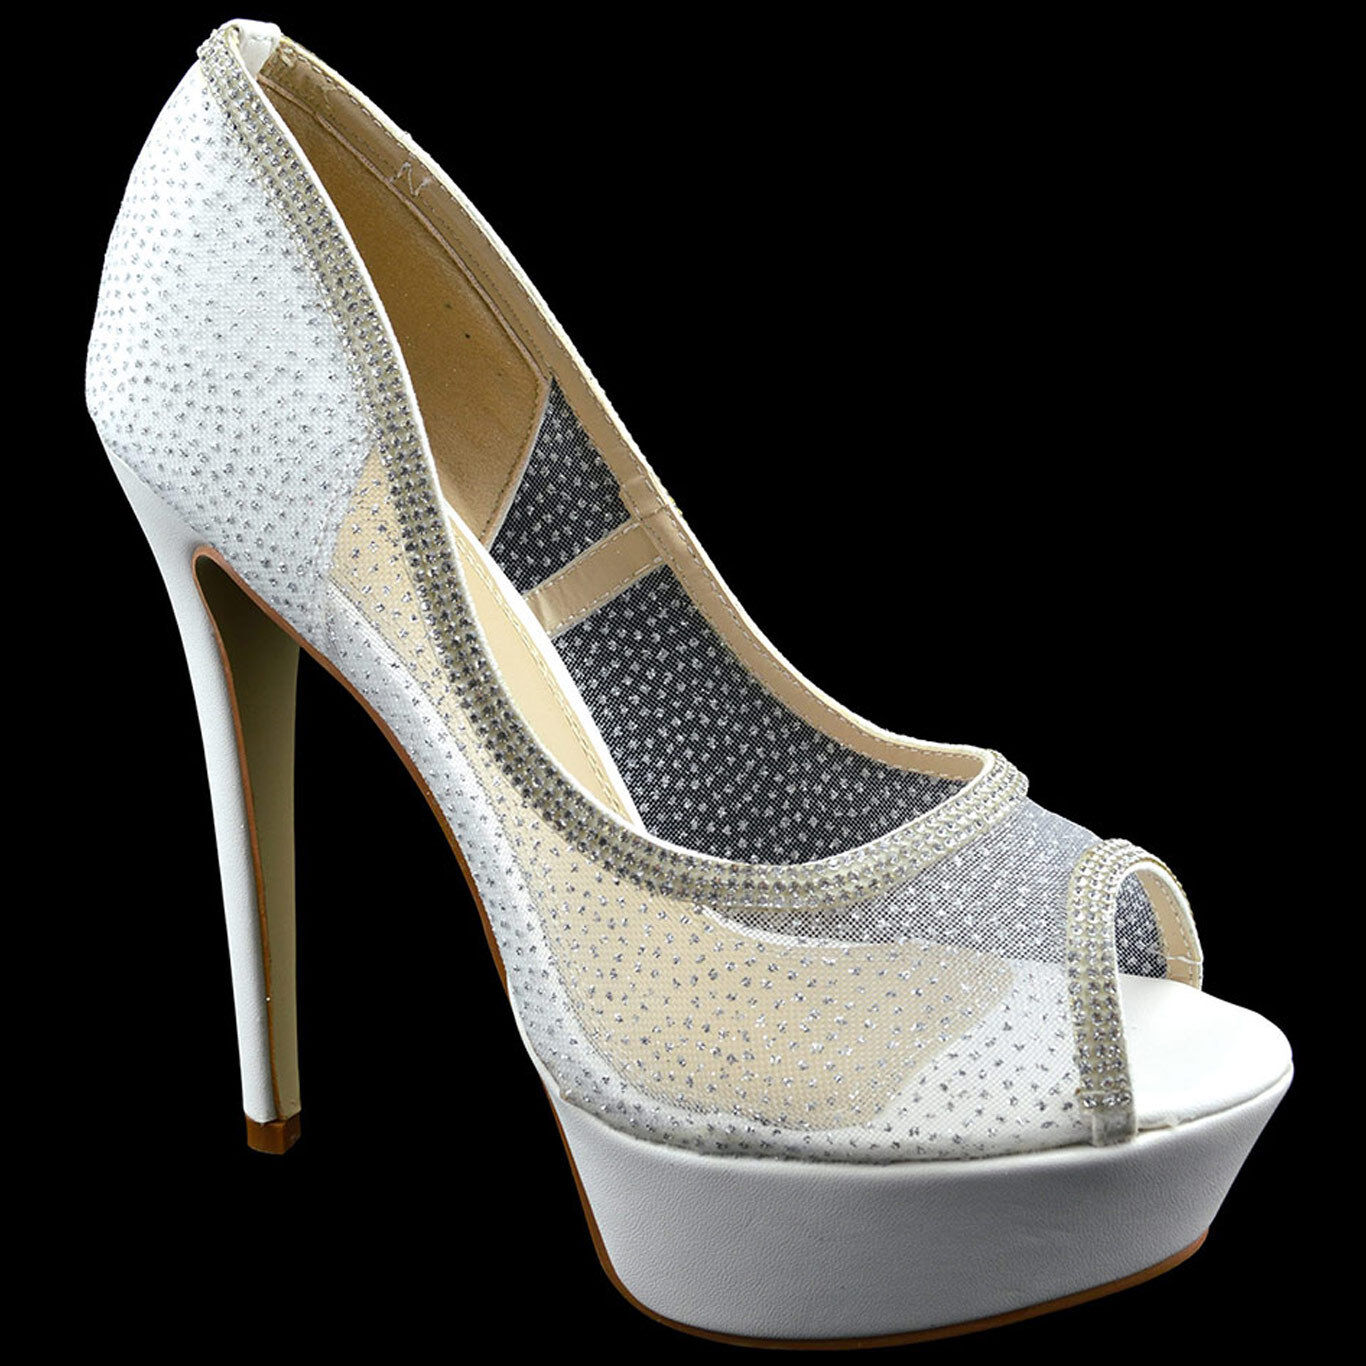 140 White Sexy Stiletto CRYSTAL Strass Peep Toe Women shoes High Heels